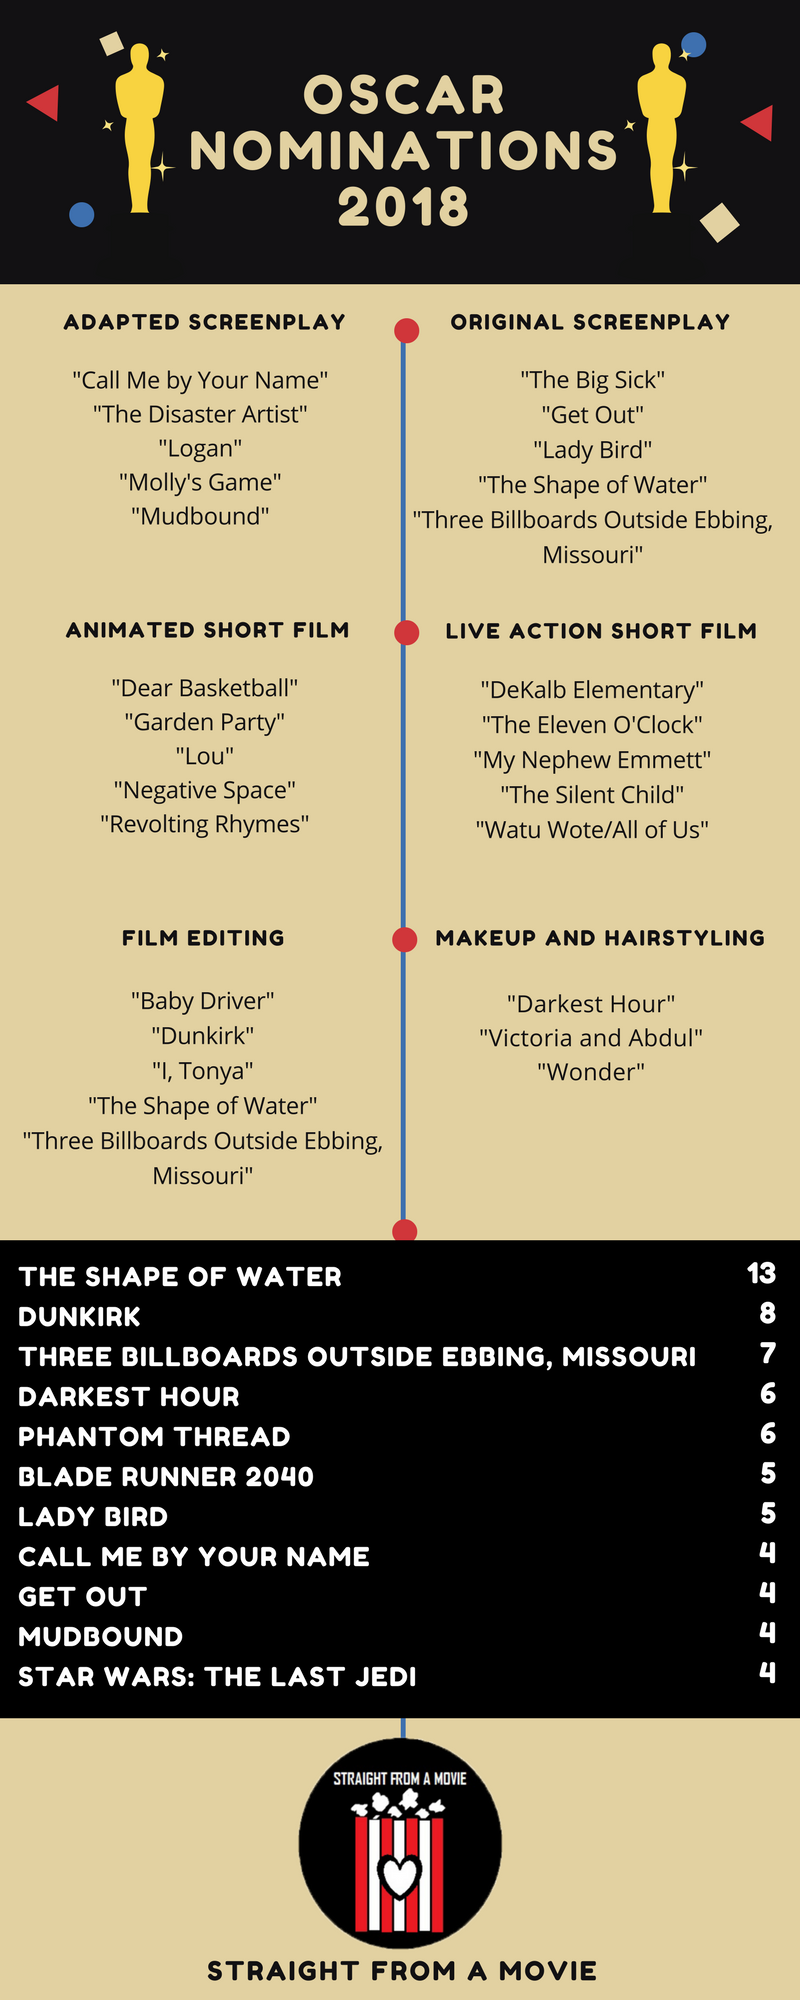 Oscar Award Nominations 2018